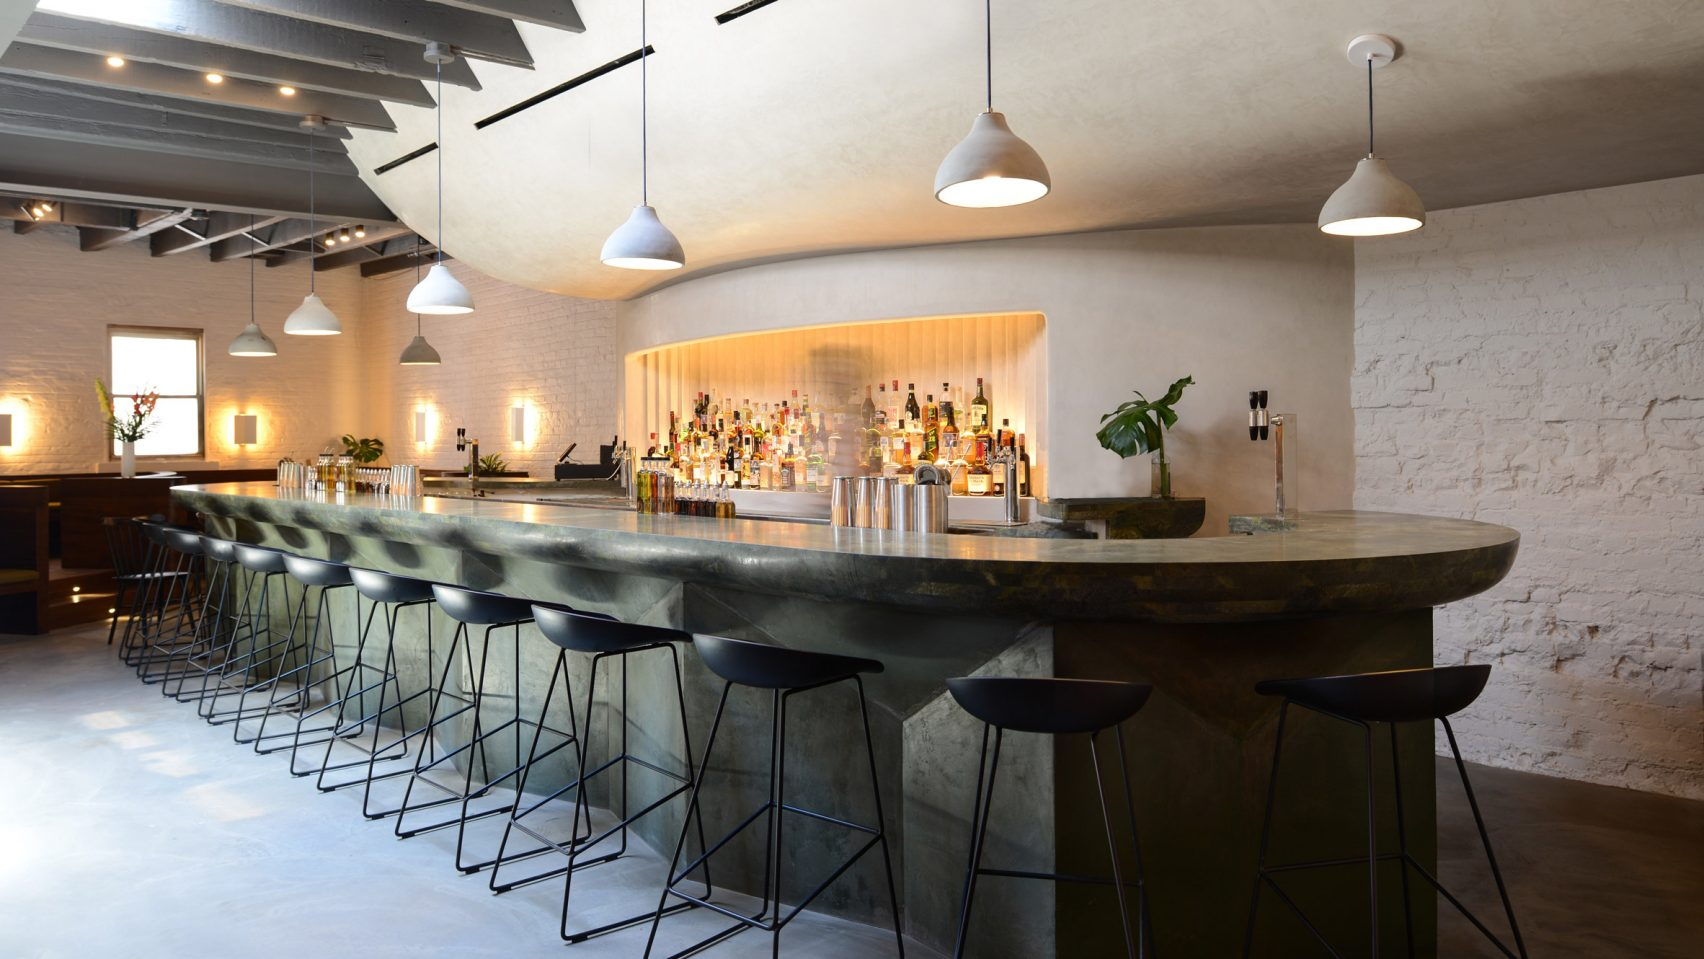 An interior look at the bar at Bar Beau, a coffee shop/bar located in Brooklyn with MEP design services provided by 2L Engineering